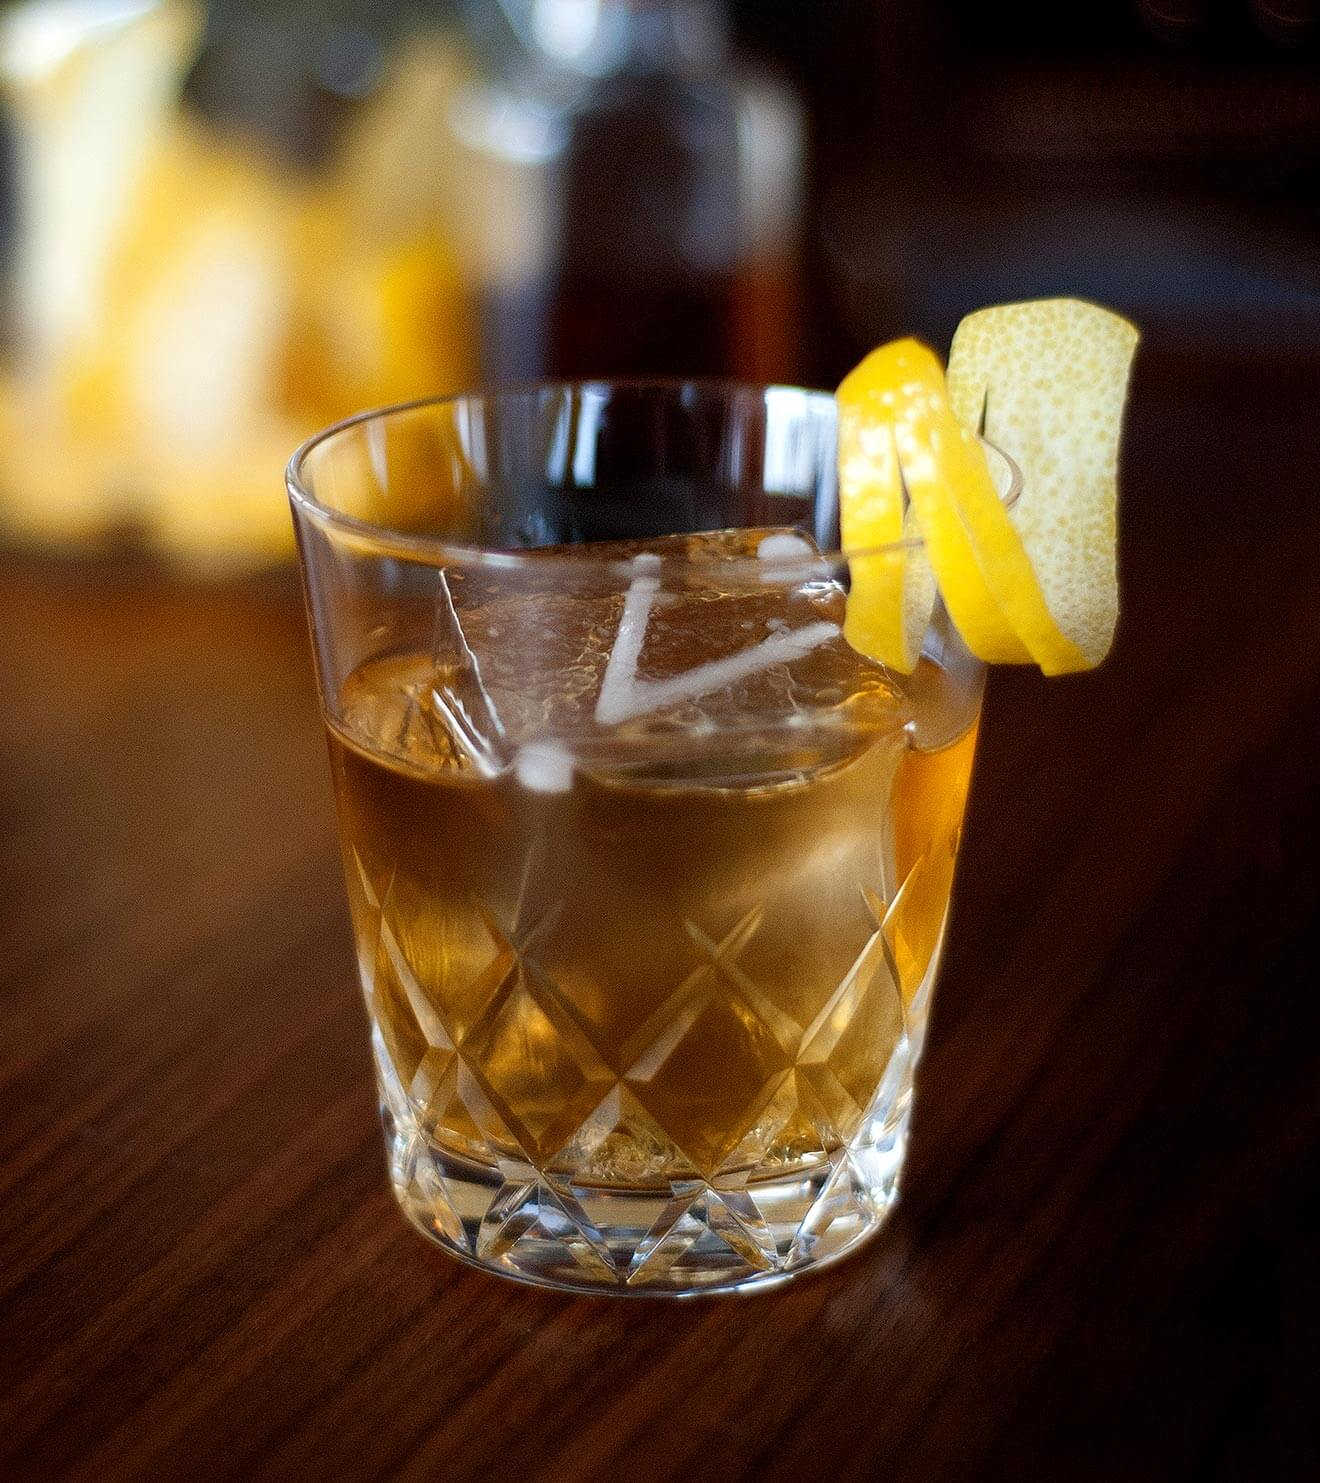 REVEL Old Fashioned, cocktail with garnish